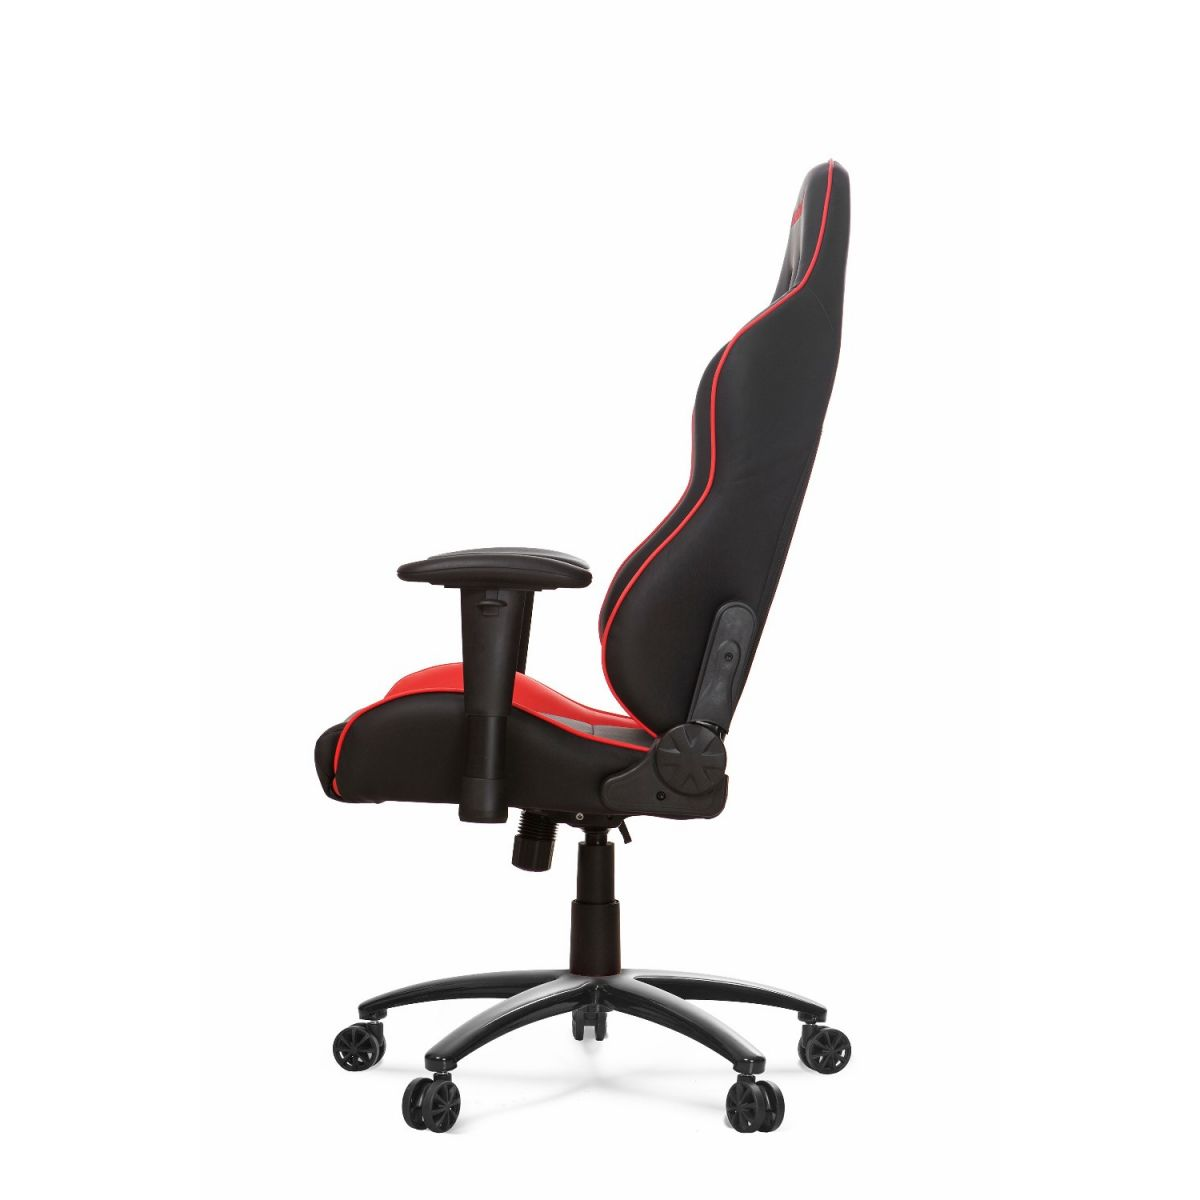 Cadeira AKRacing Nitro Gaming Red AK-NITRO-RD 10029-2 - AKRacing